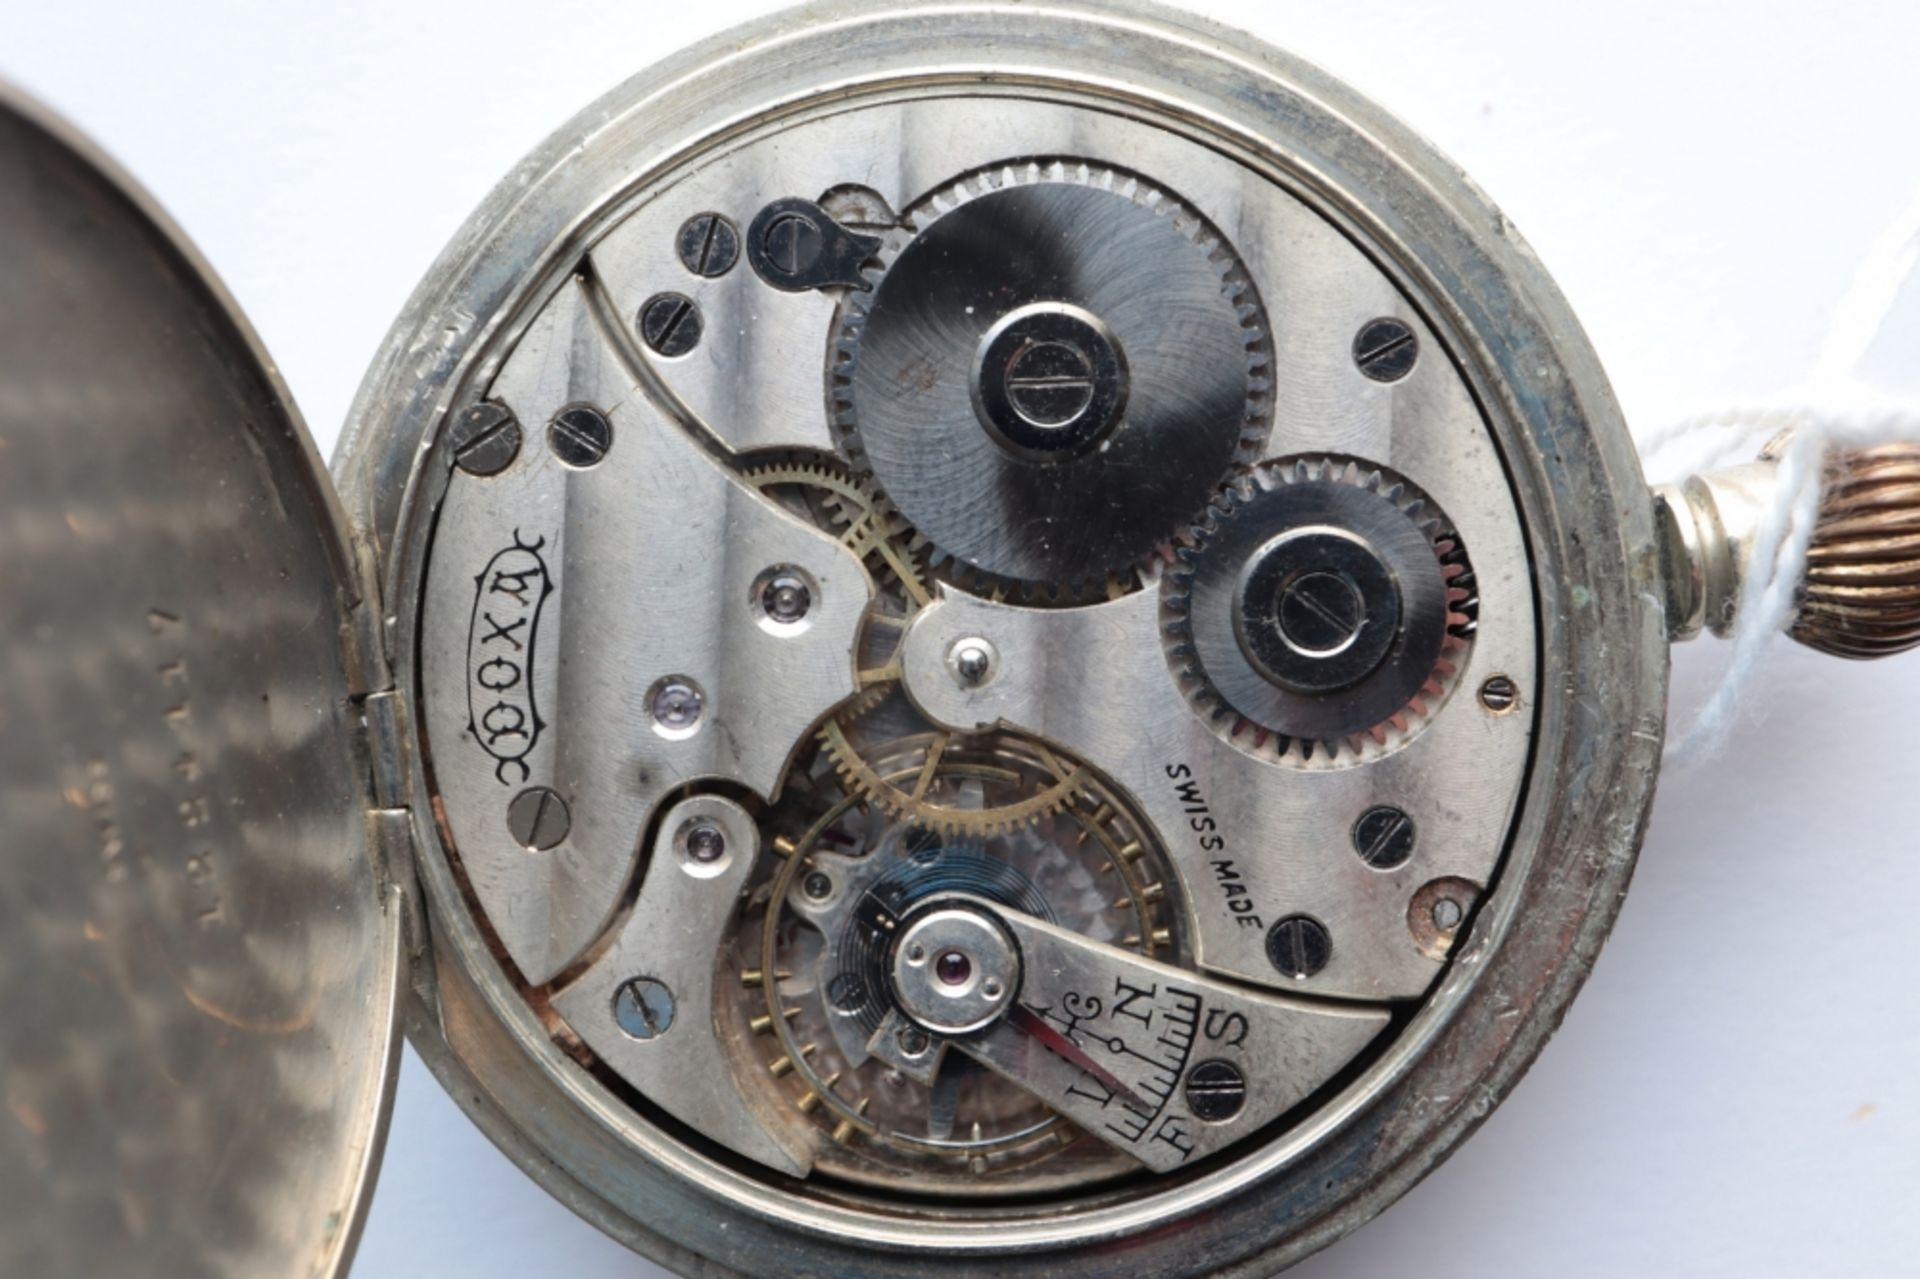 Lot of 6 watches including 4 pocket watches, a travel alarm clock and a wristwatch. - Image 5 of 7